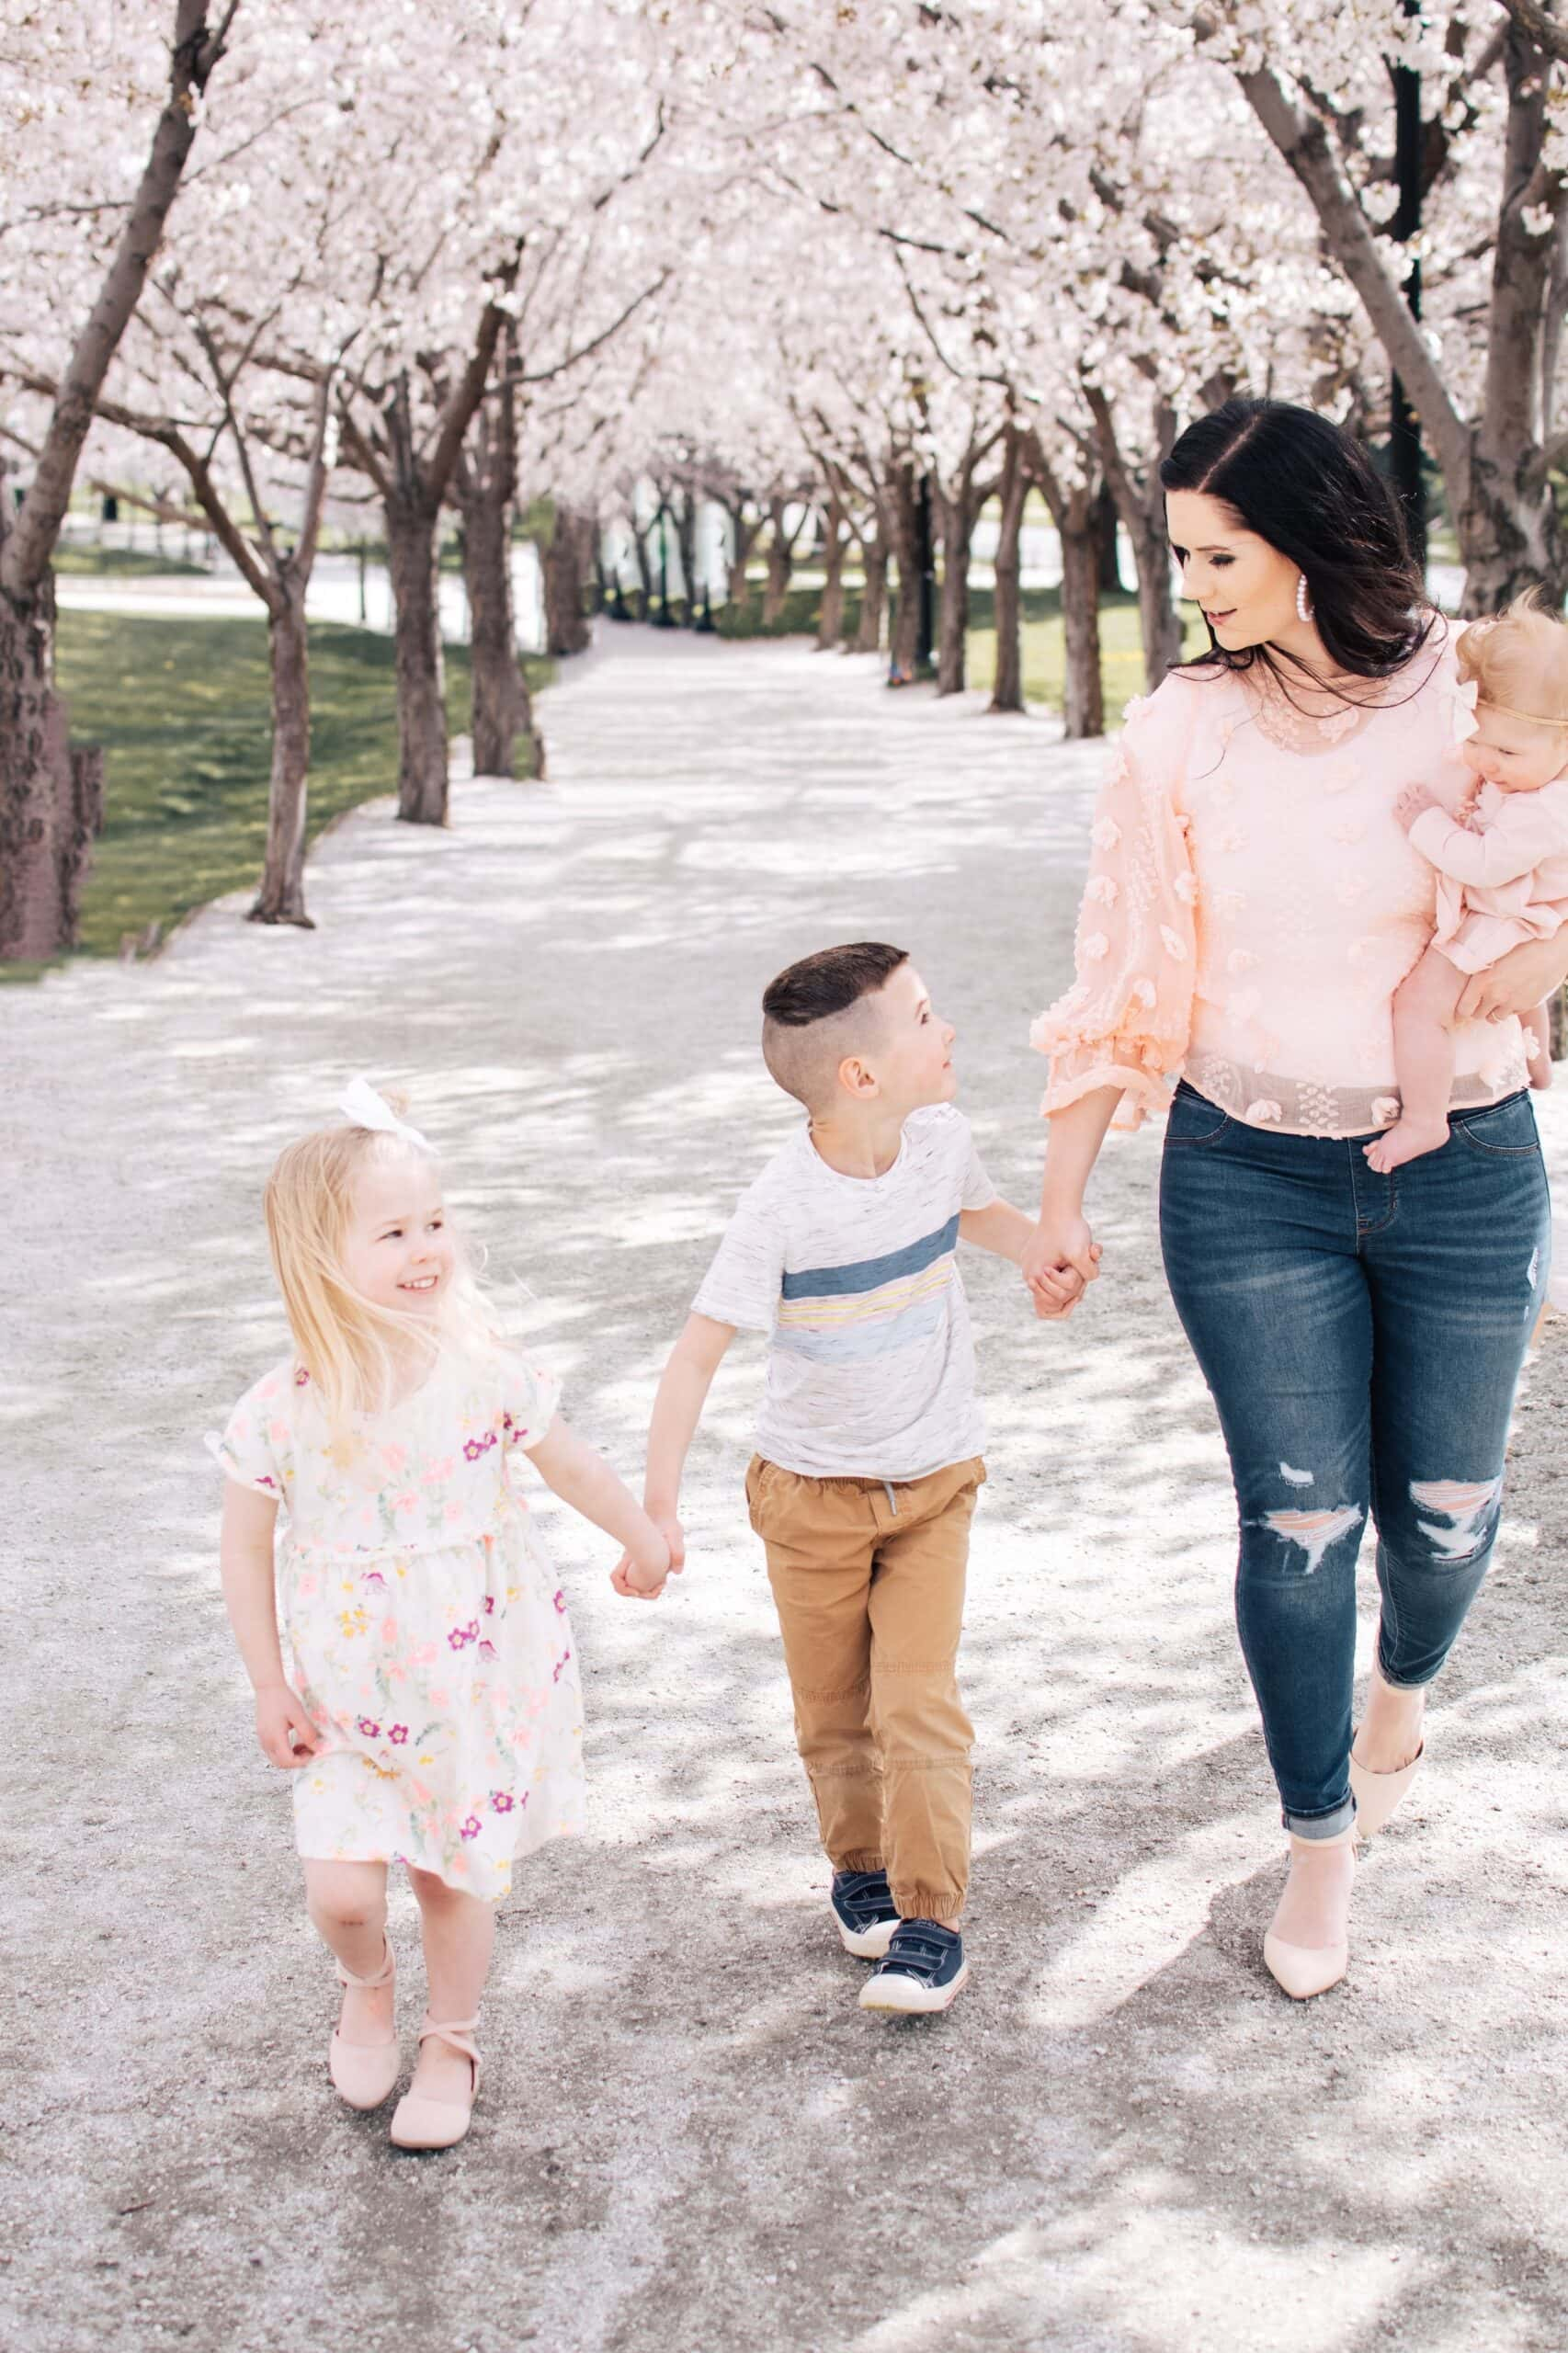 Mom and kids wear spring colors for family photos.